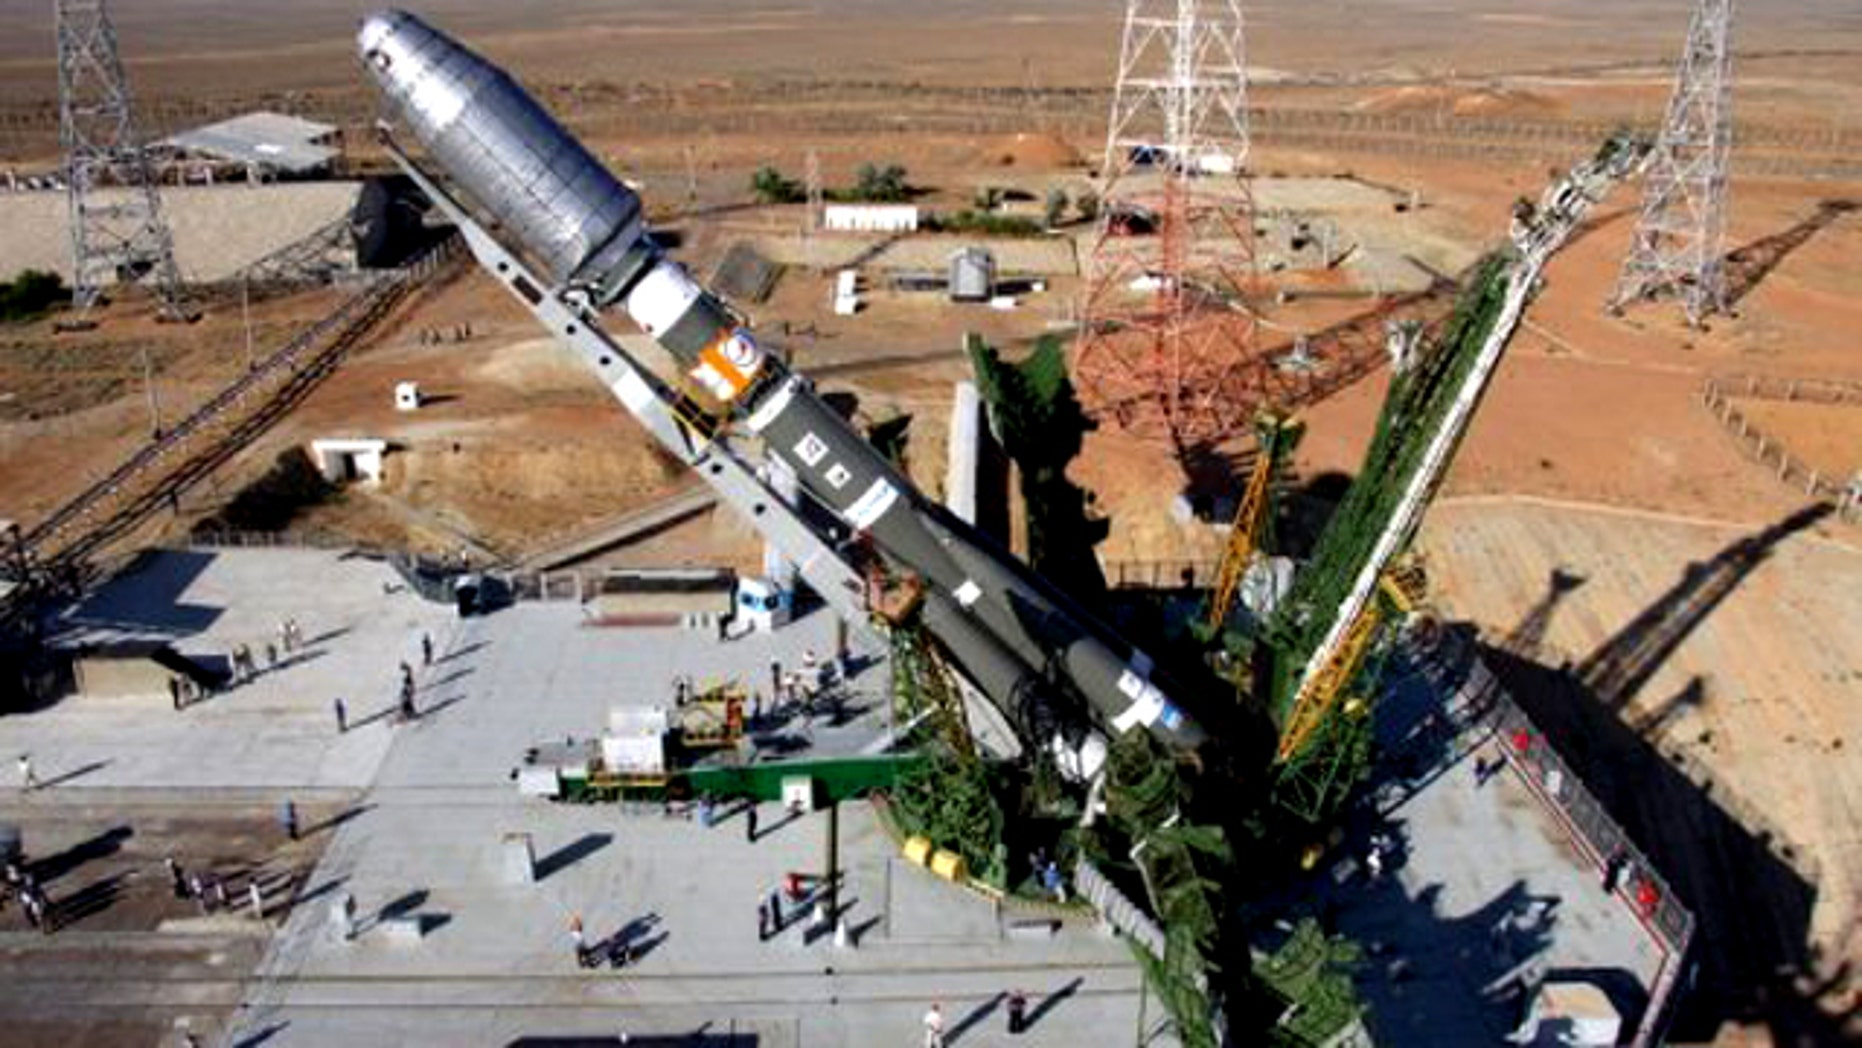 """July, 2011: A Soyuz rocket is erected on the launch pad of the Baikonur cosmodrome. Moscow declared it was now """"the era of the Soyuz"""" after the US shuttle's last flight left the Russian system as the sole means for delivering astronauts to the International Space Station."""